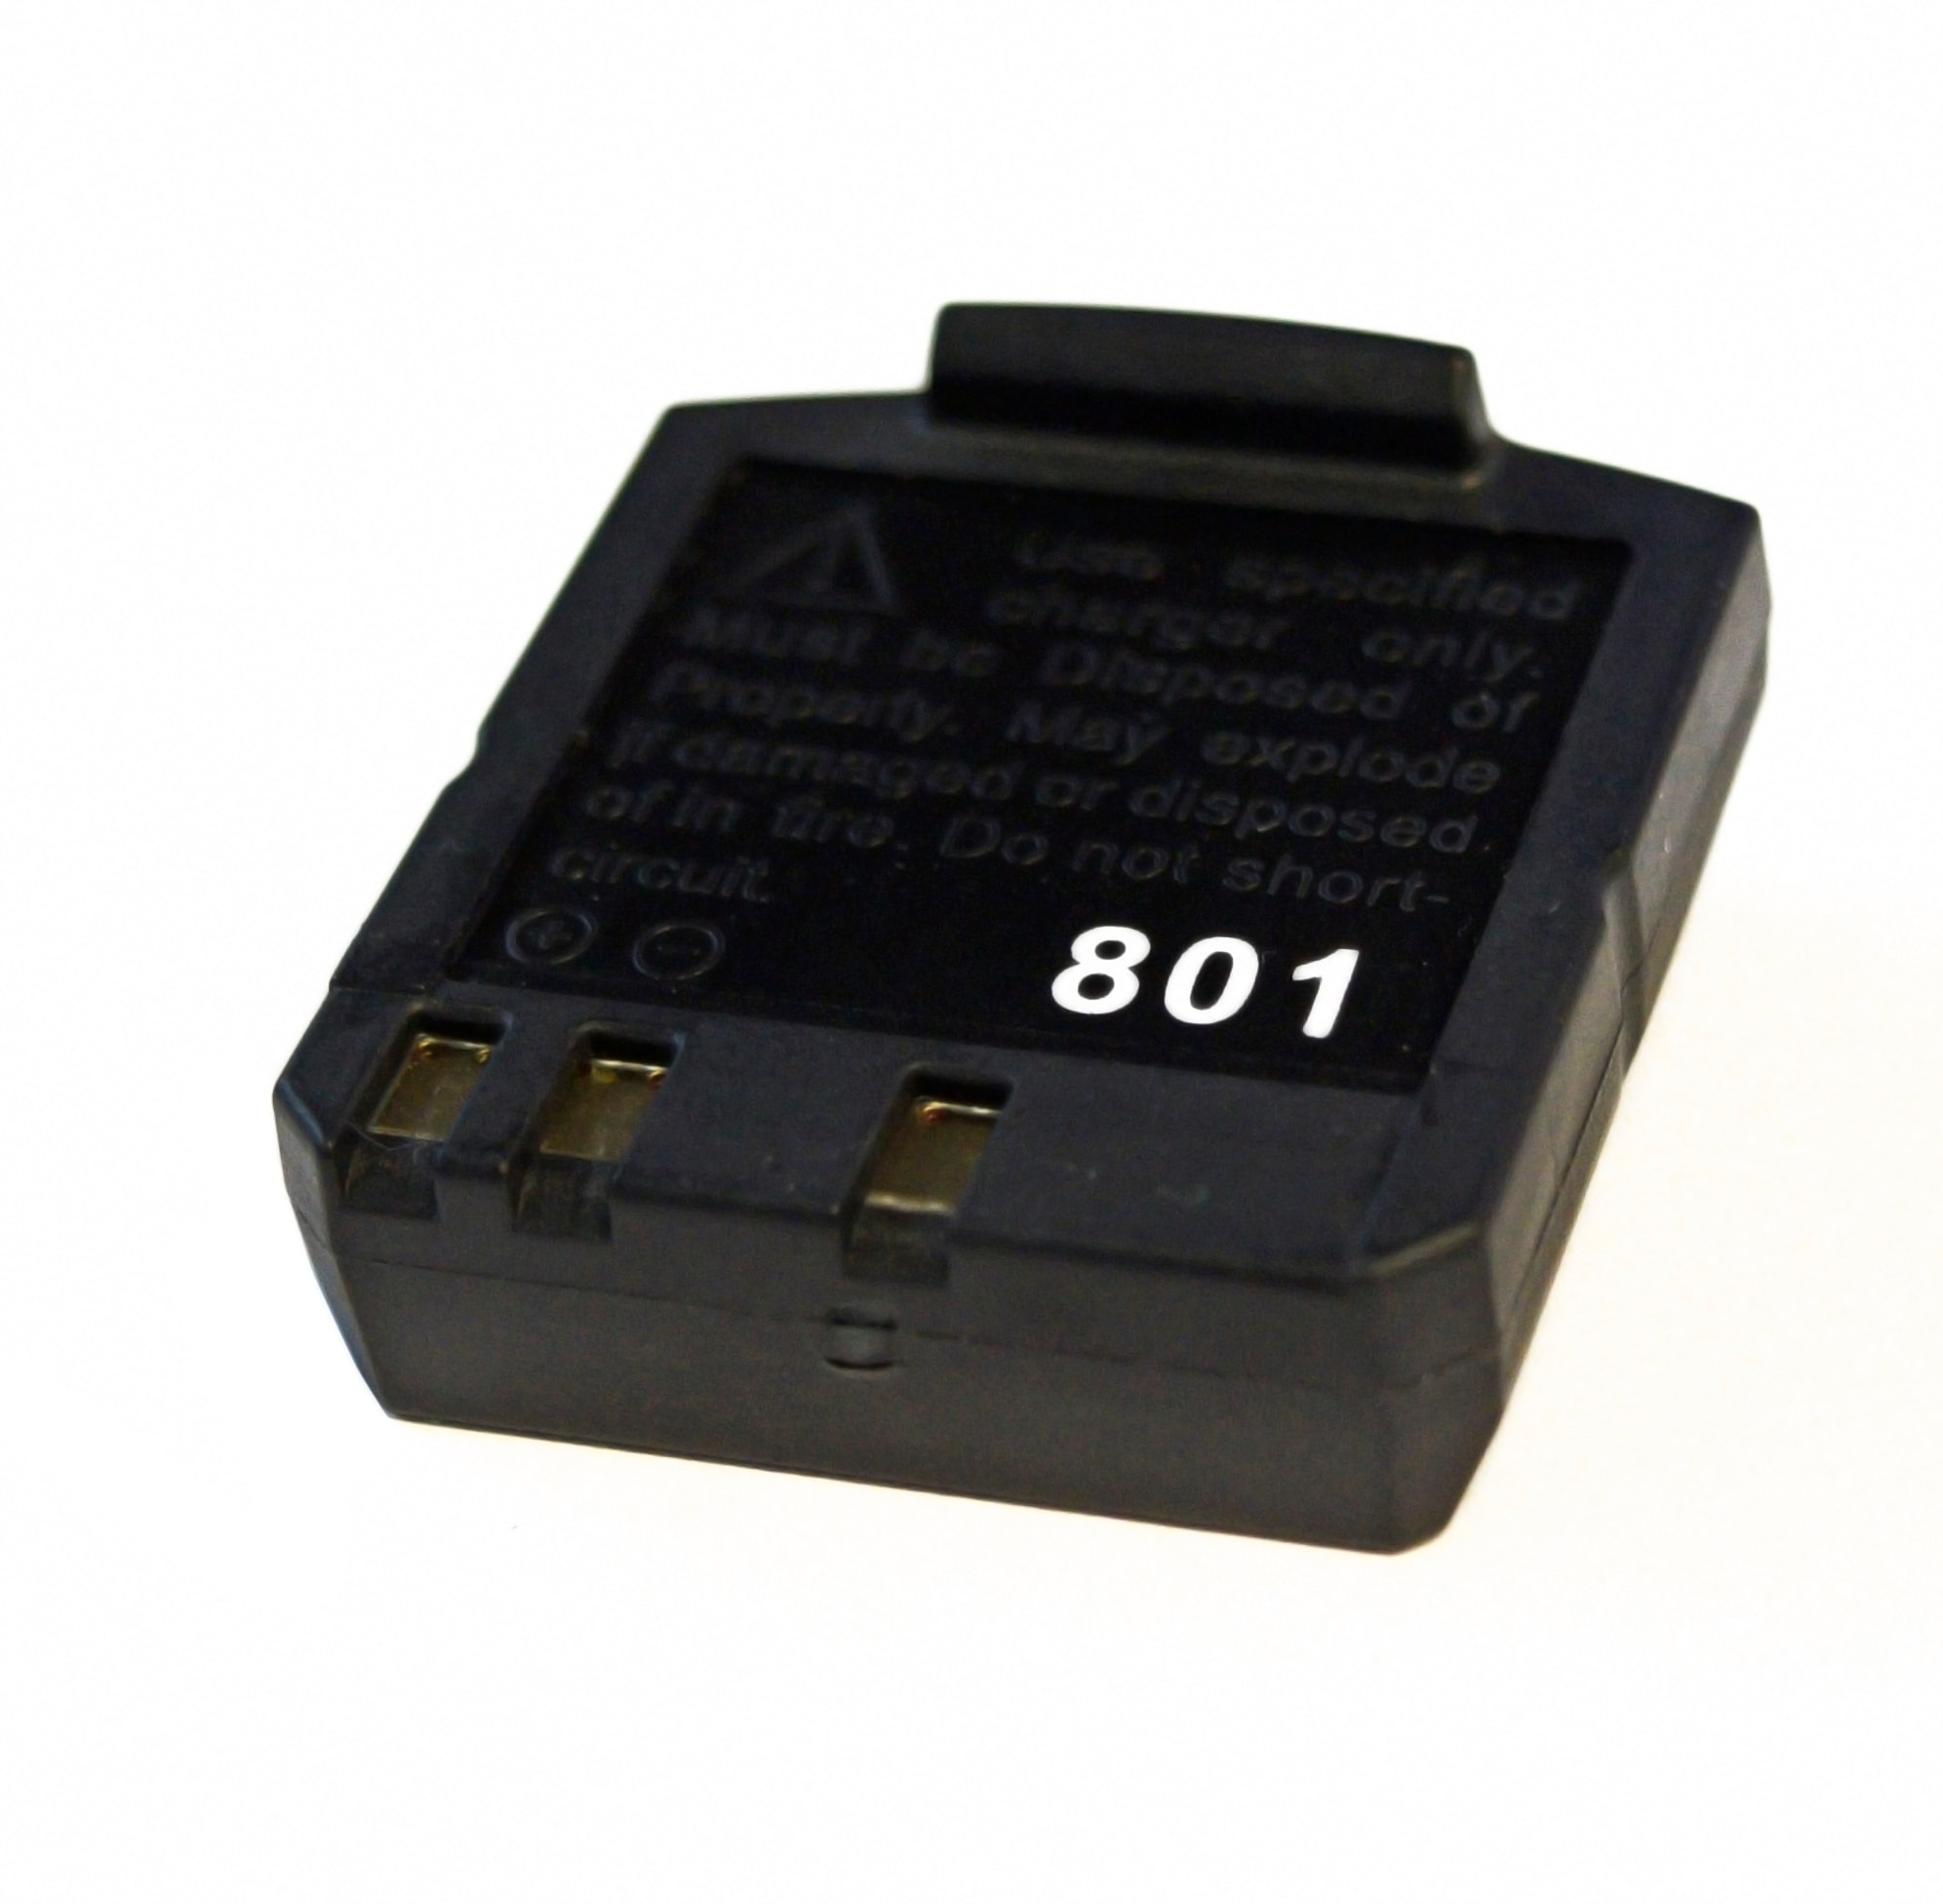 BATT-RXU - Battery for RF Underchin Receiver